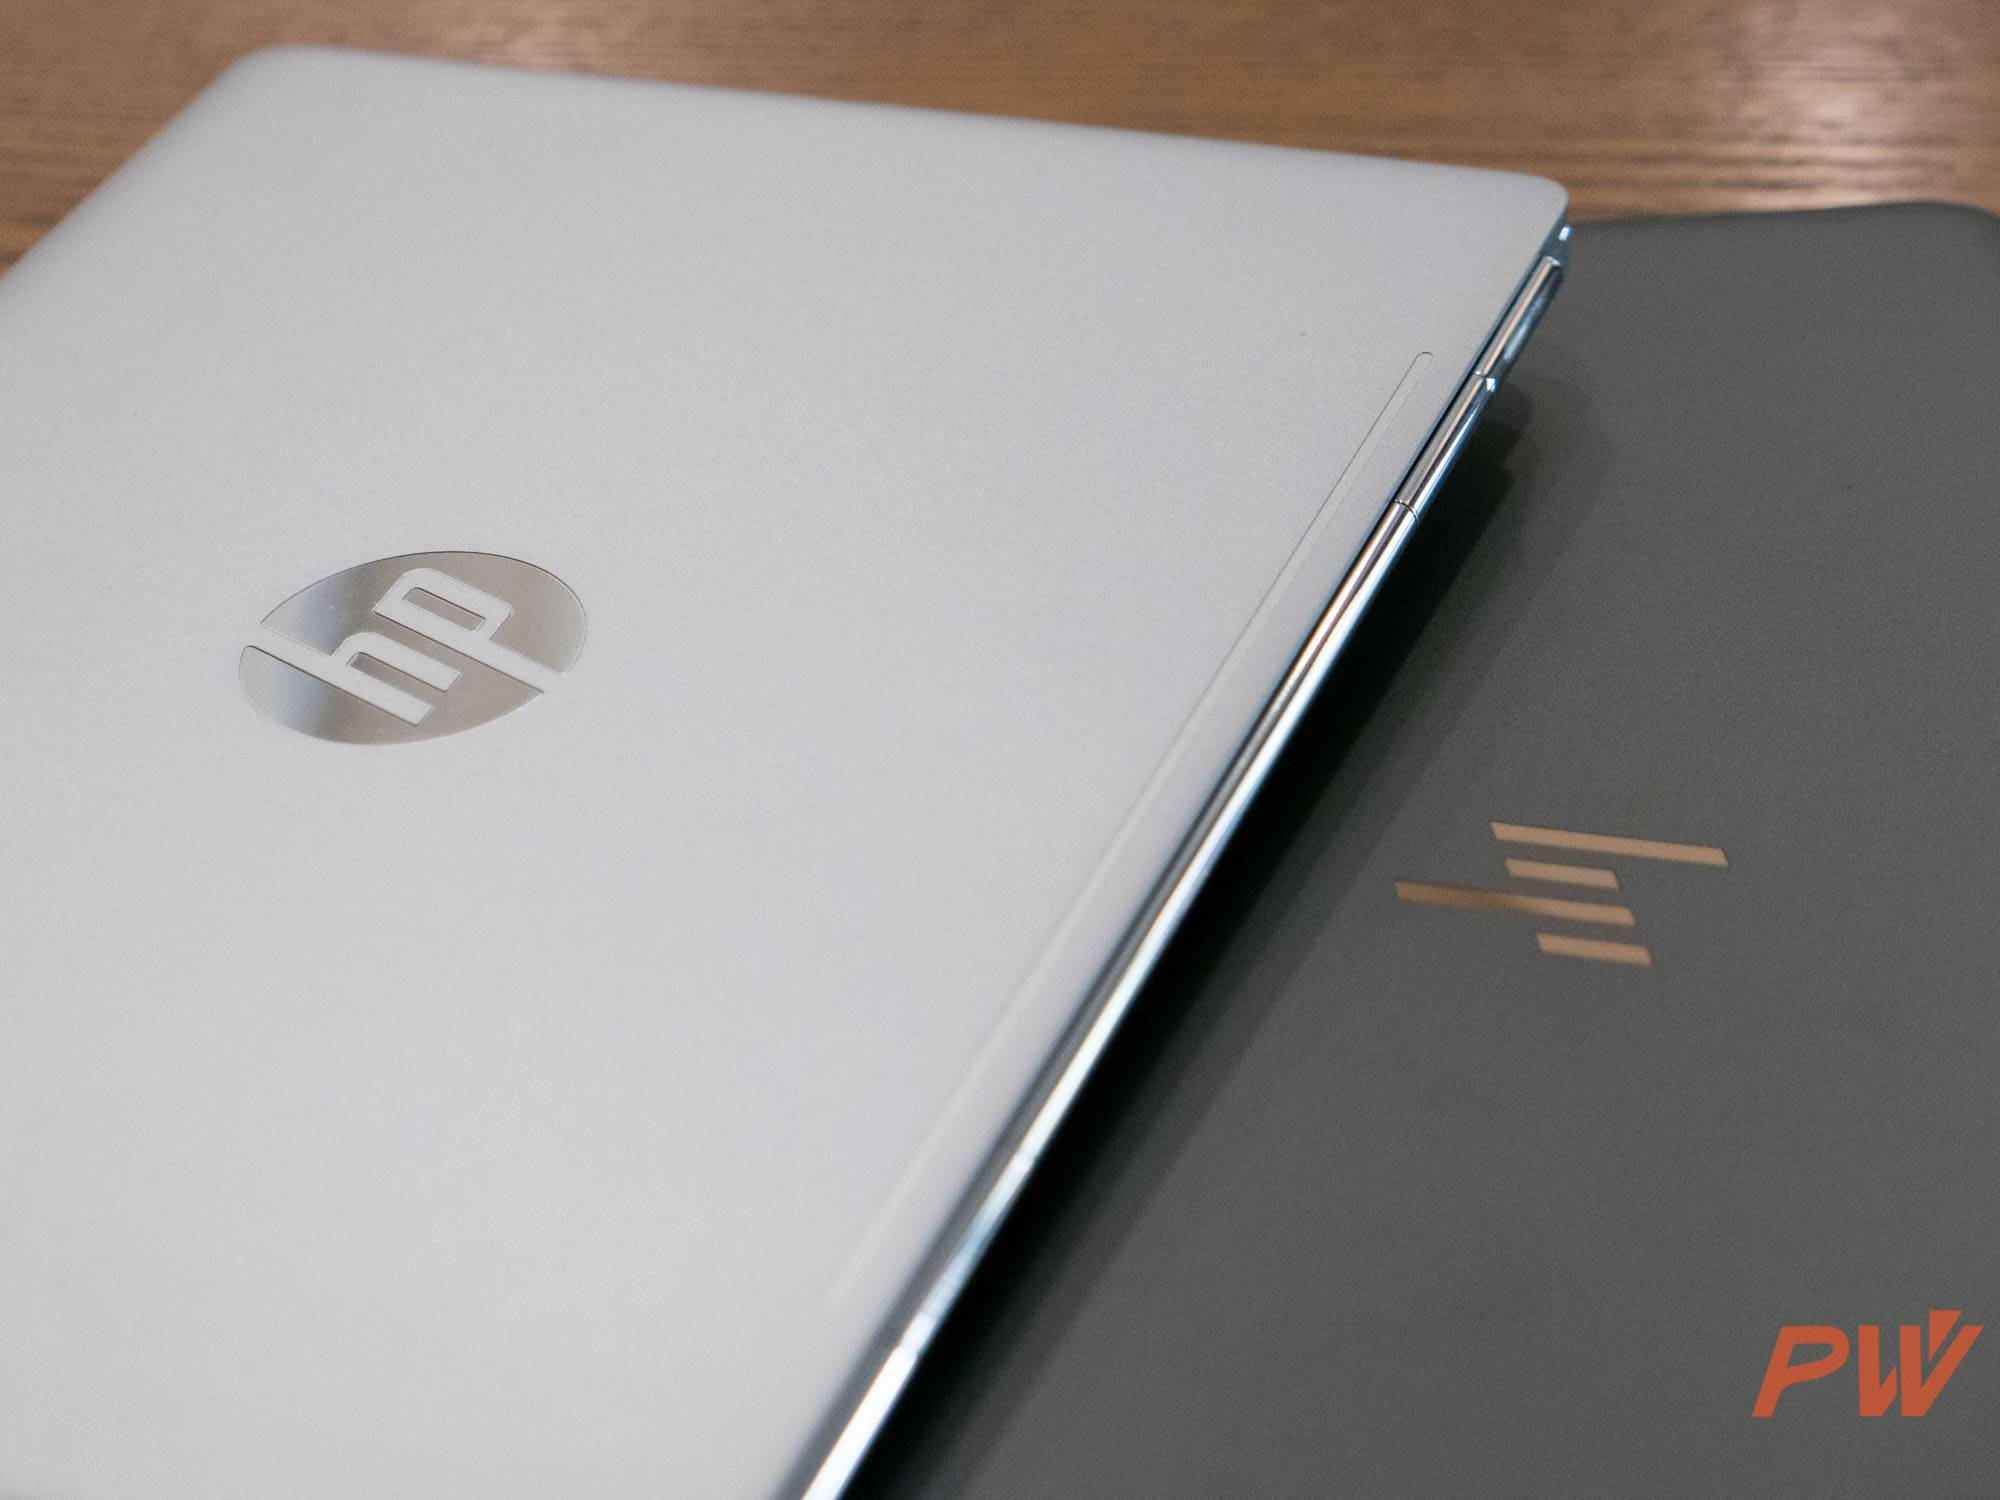 HP EliteBook Folio G1 Spectre 13 PingWest Photo by Hao Ying-3